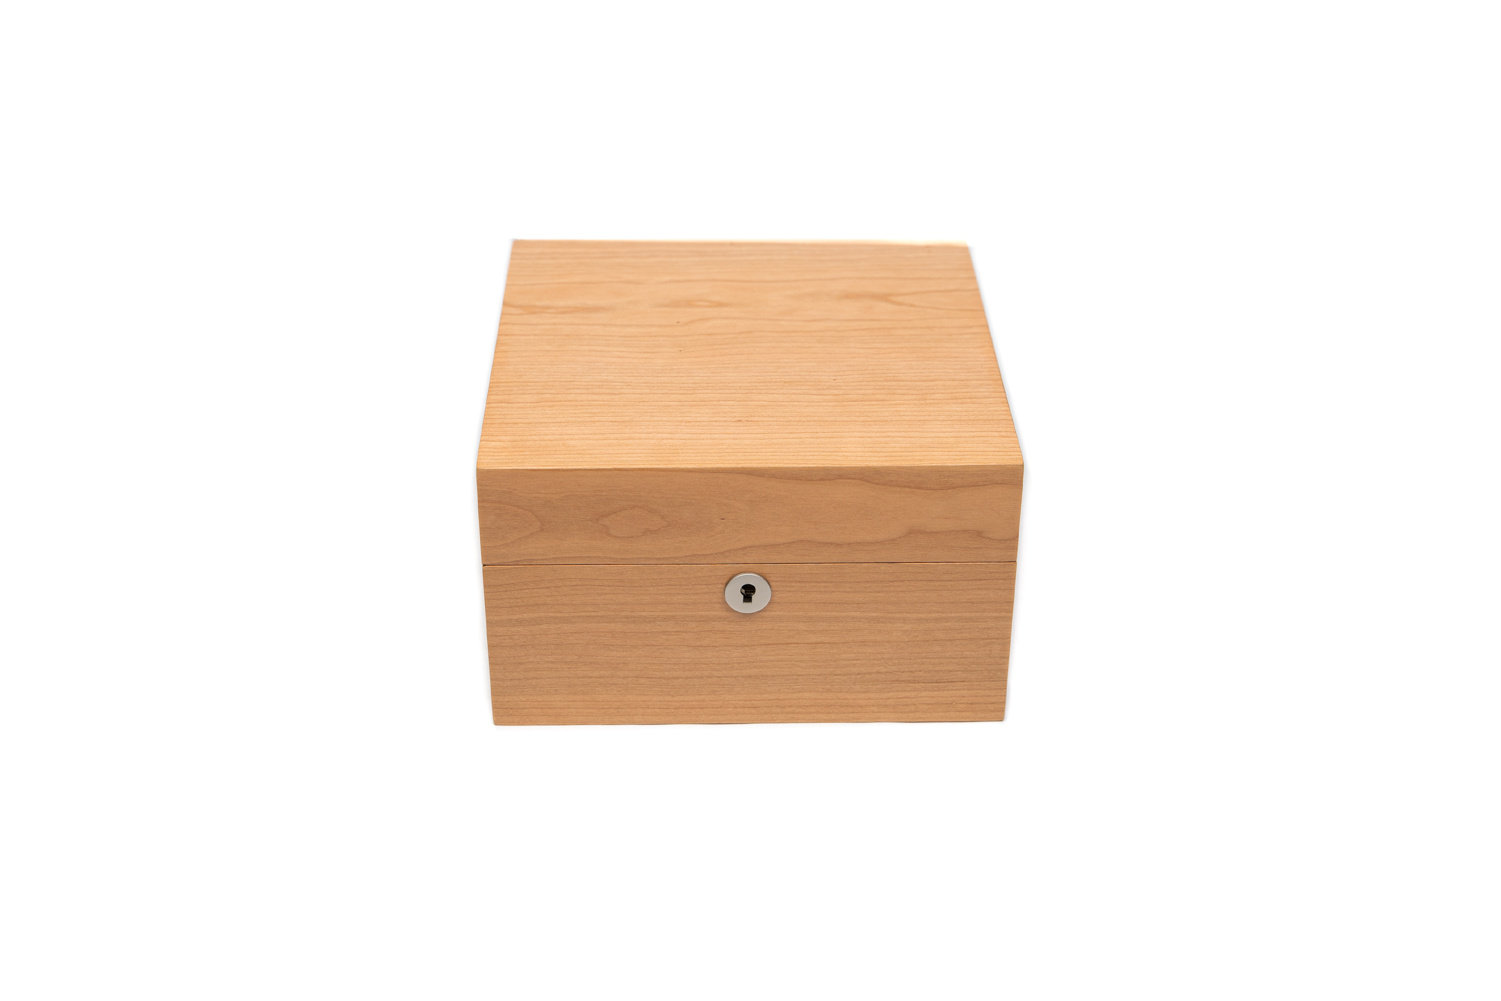 **BOGO** 4-Strain Storage Box - Cherry